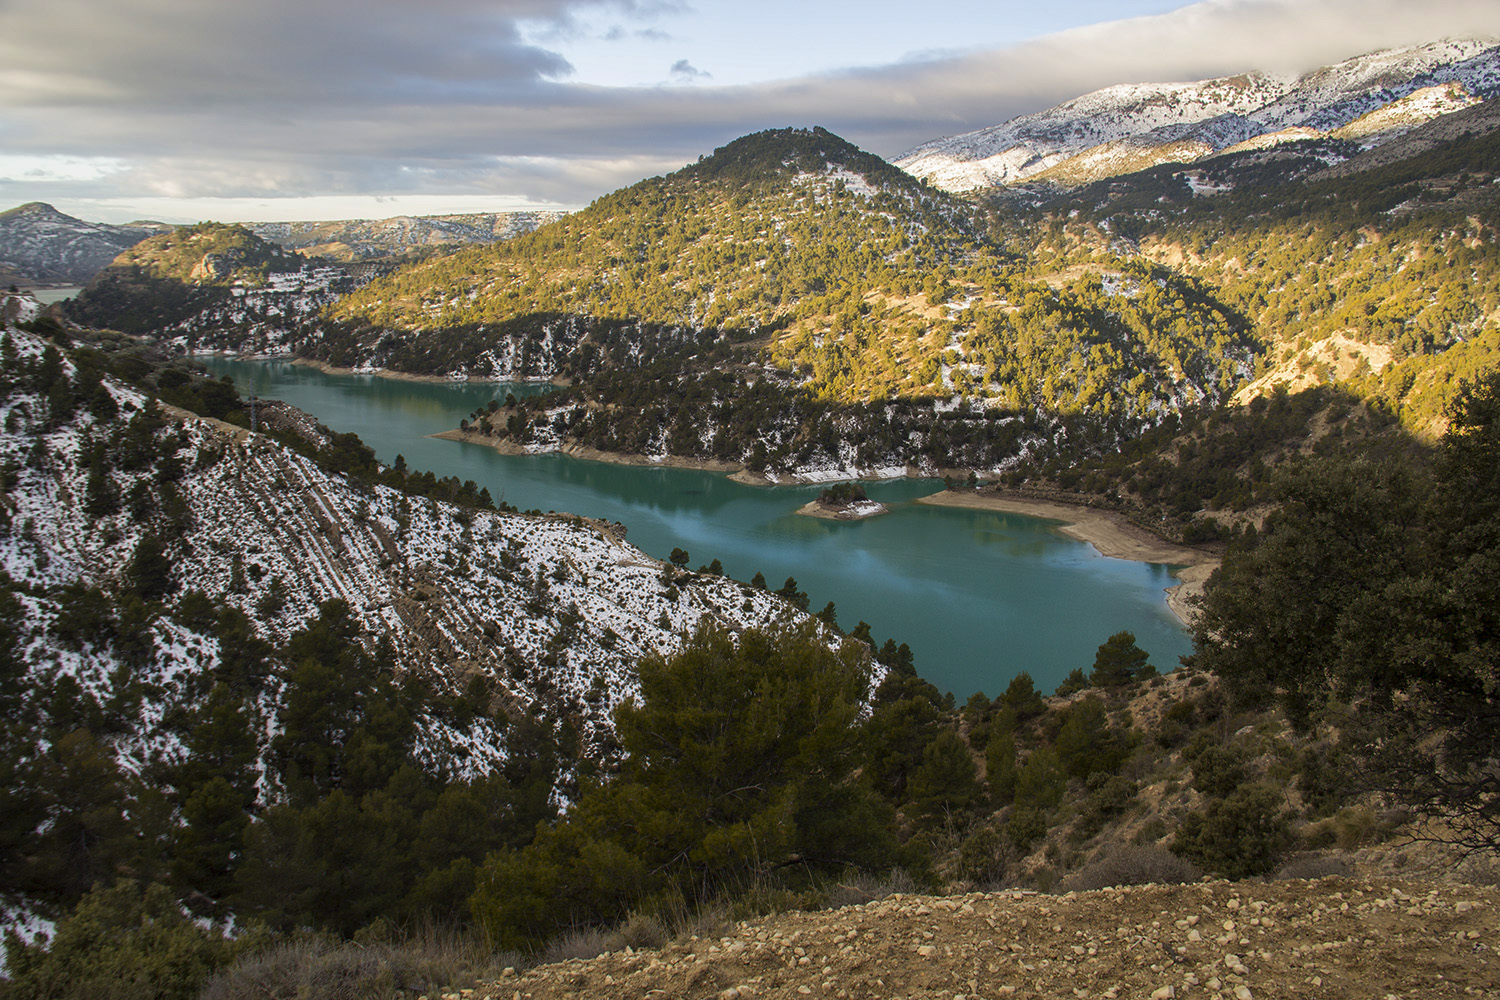 """Embalse de Portillo"" - PN Sierra de Castril, Granada - L05392"